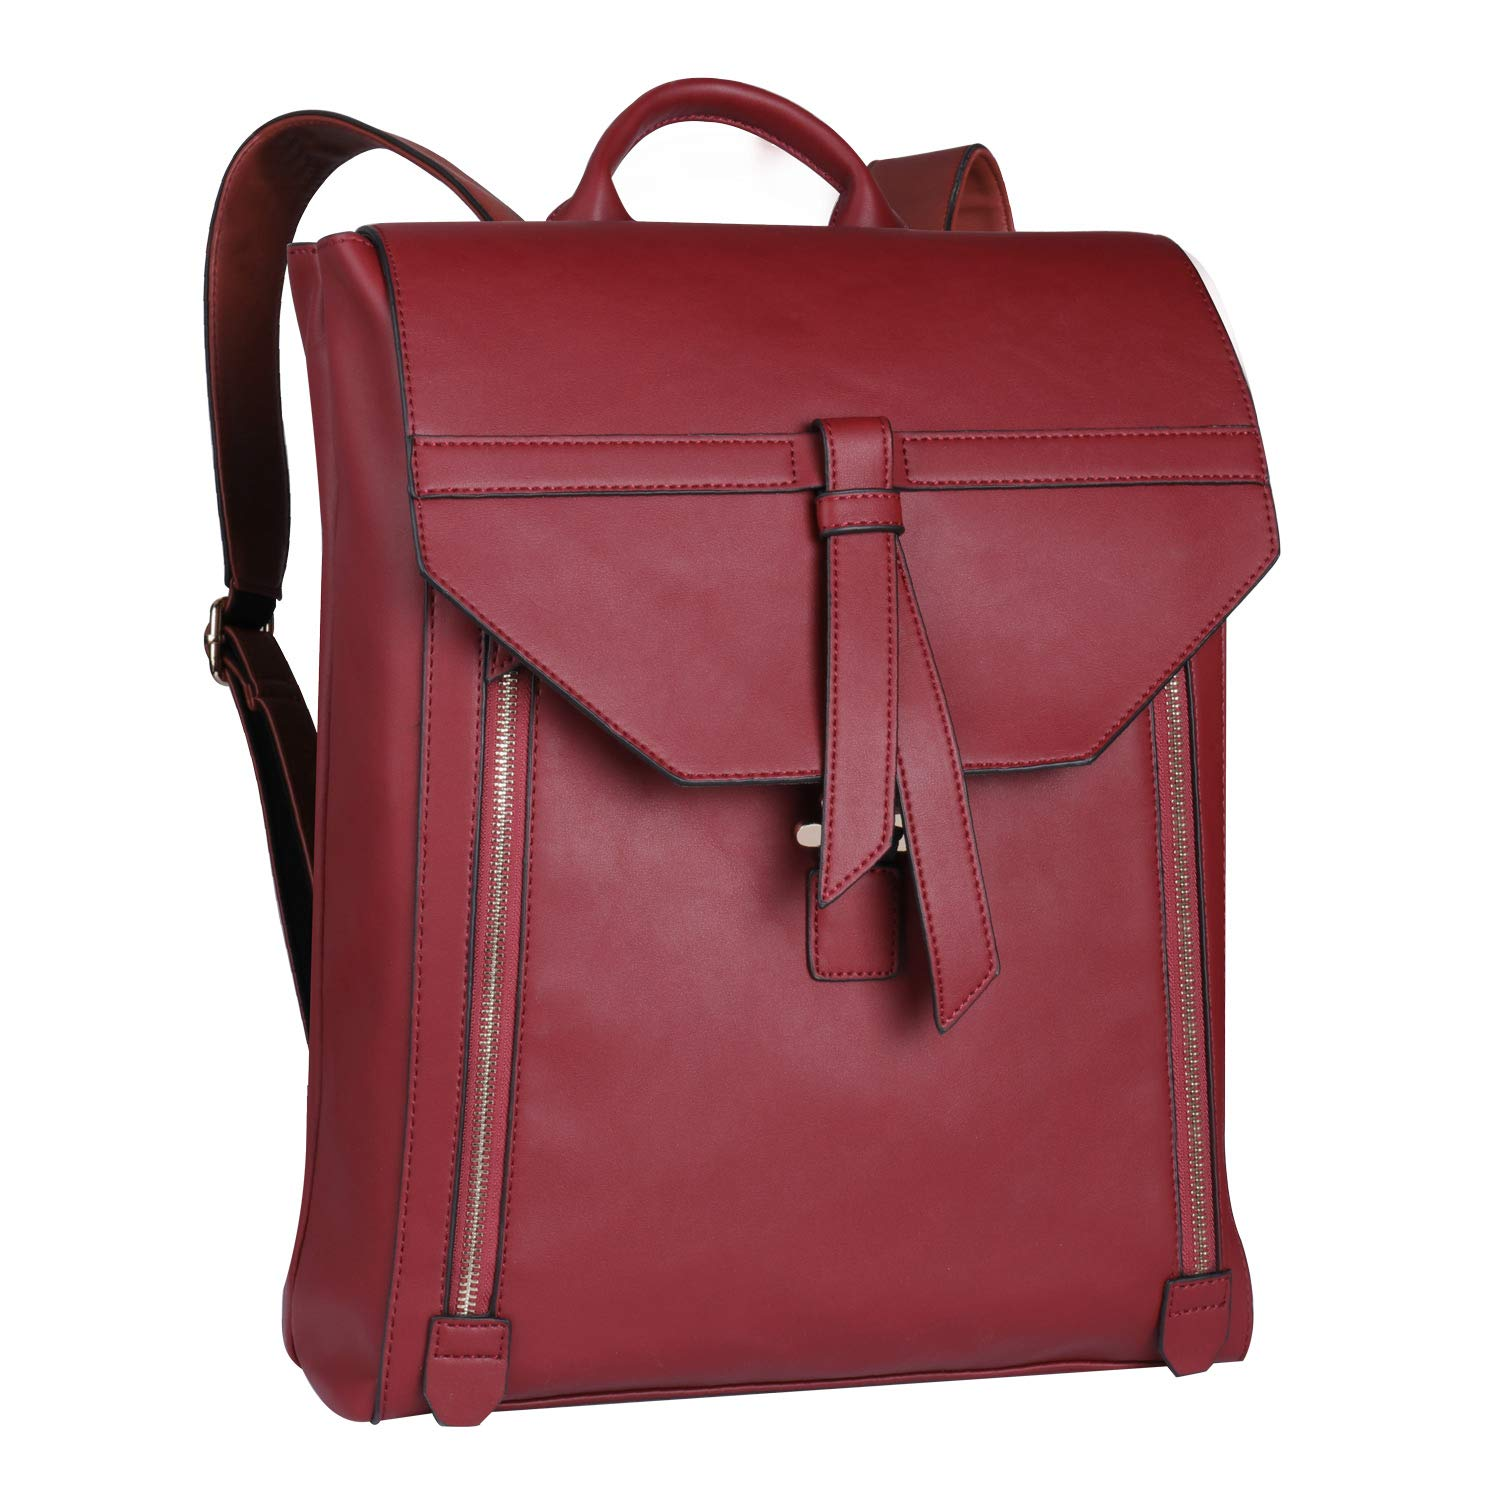 Estarer Women Fashion Leather Backpack for Travel Work College Laides PU Leather Backpack by Estarer (Image #1)